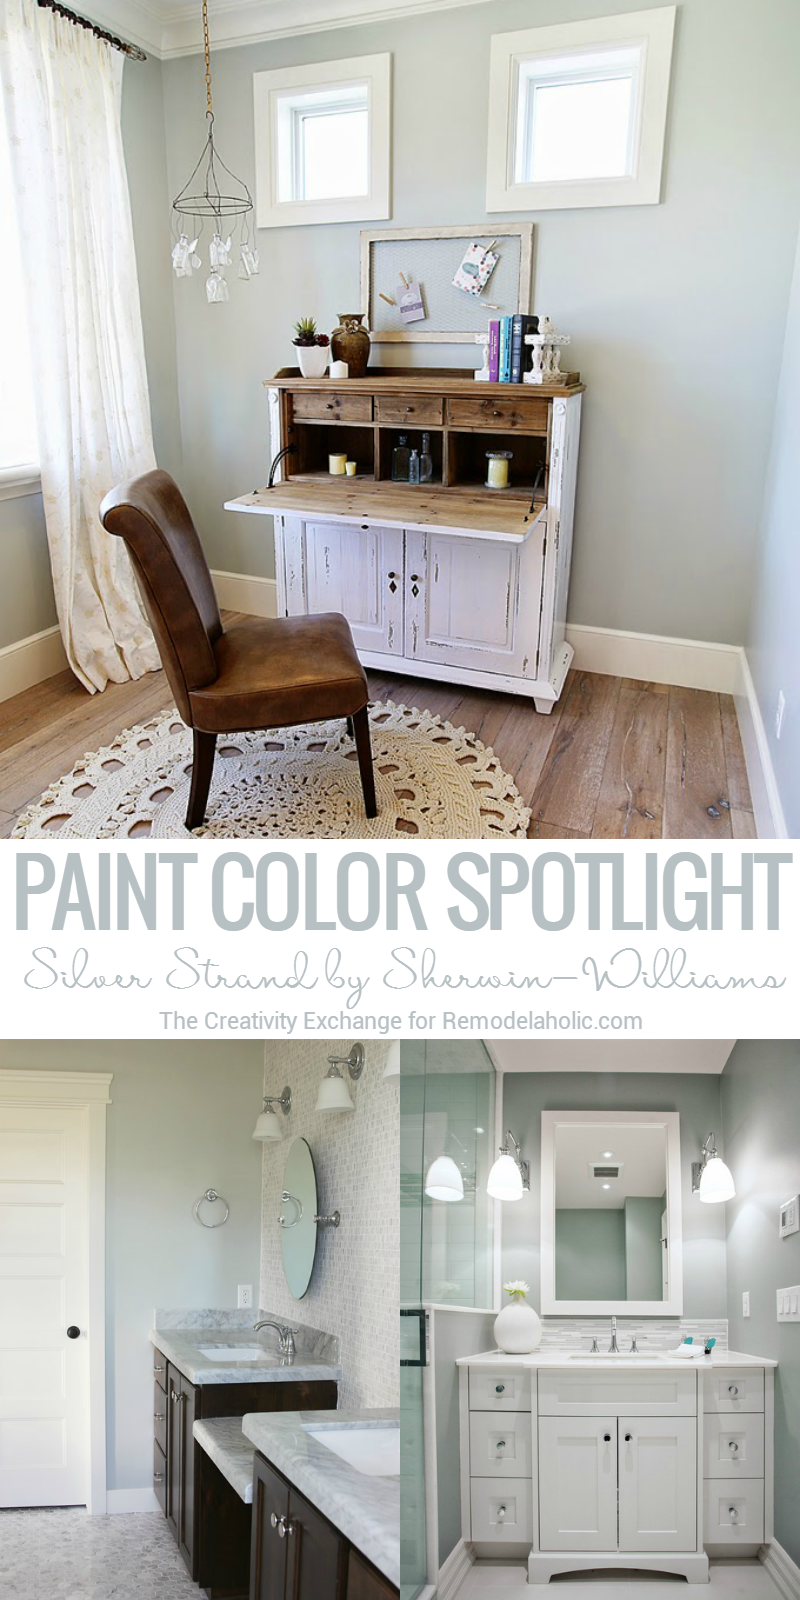 silver strand by sherwin williams is a beautifully versatile light